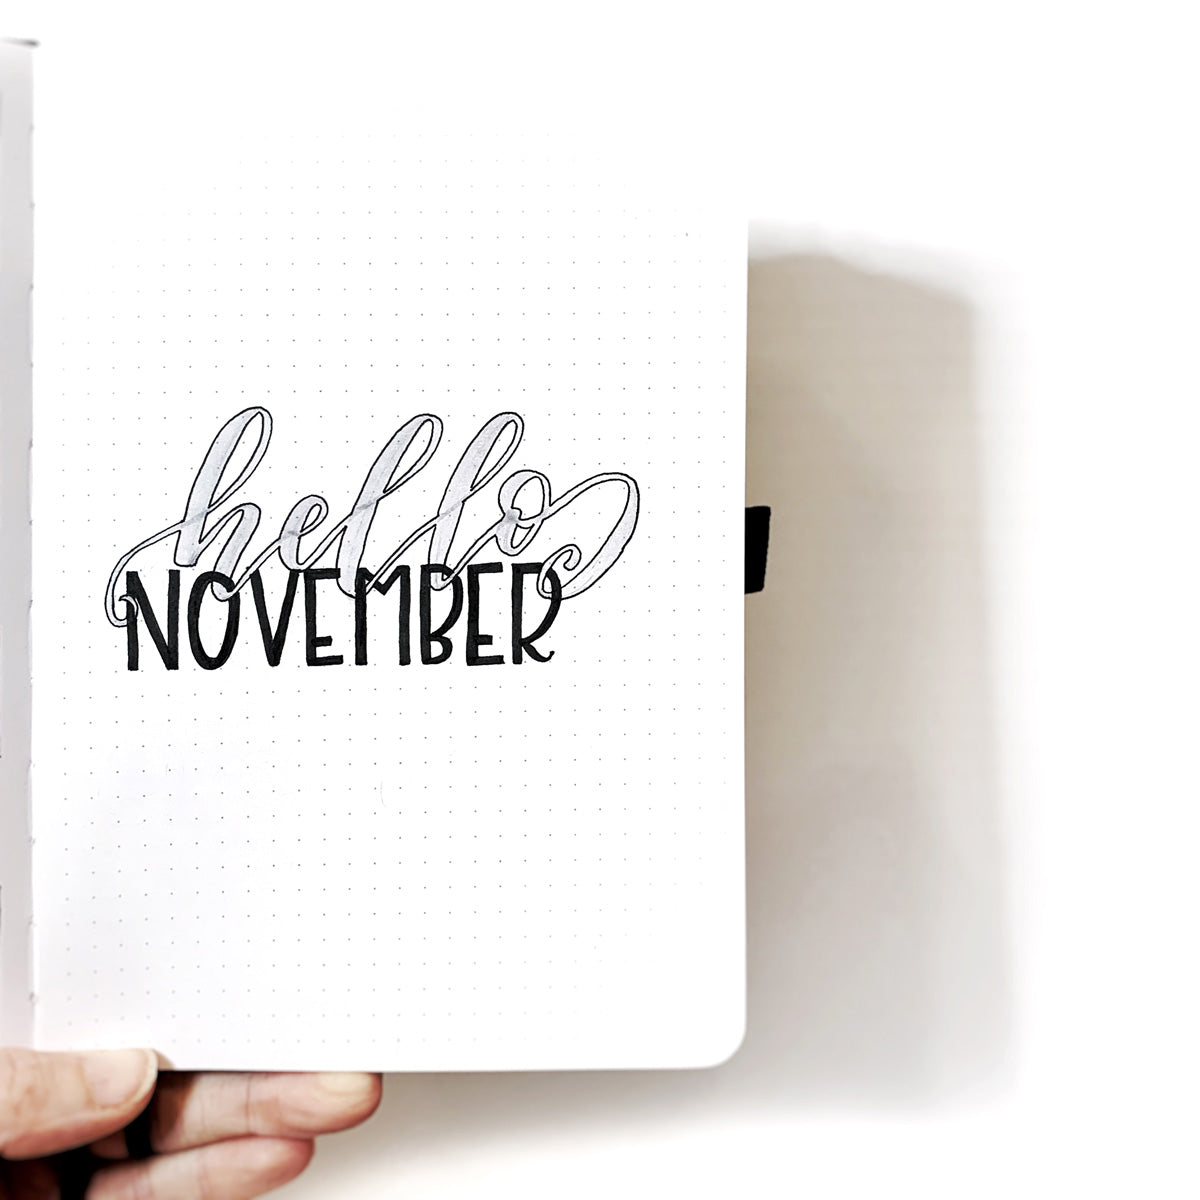 Hello November opening page for a bullet journal.